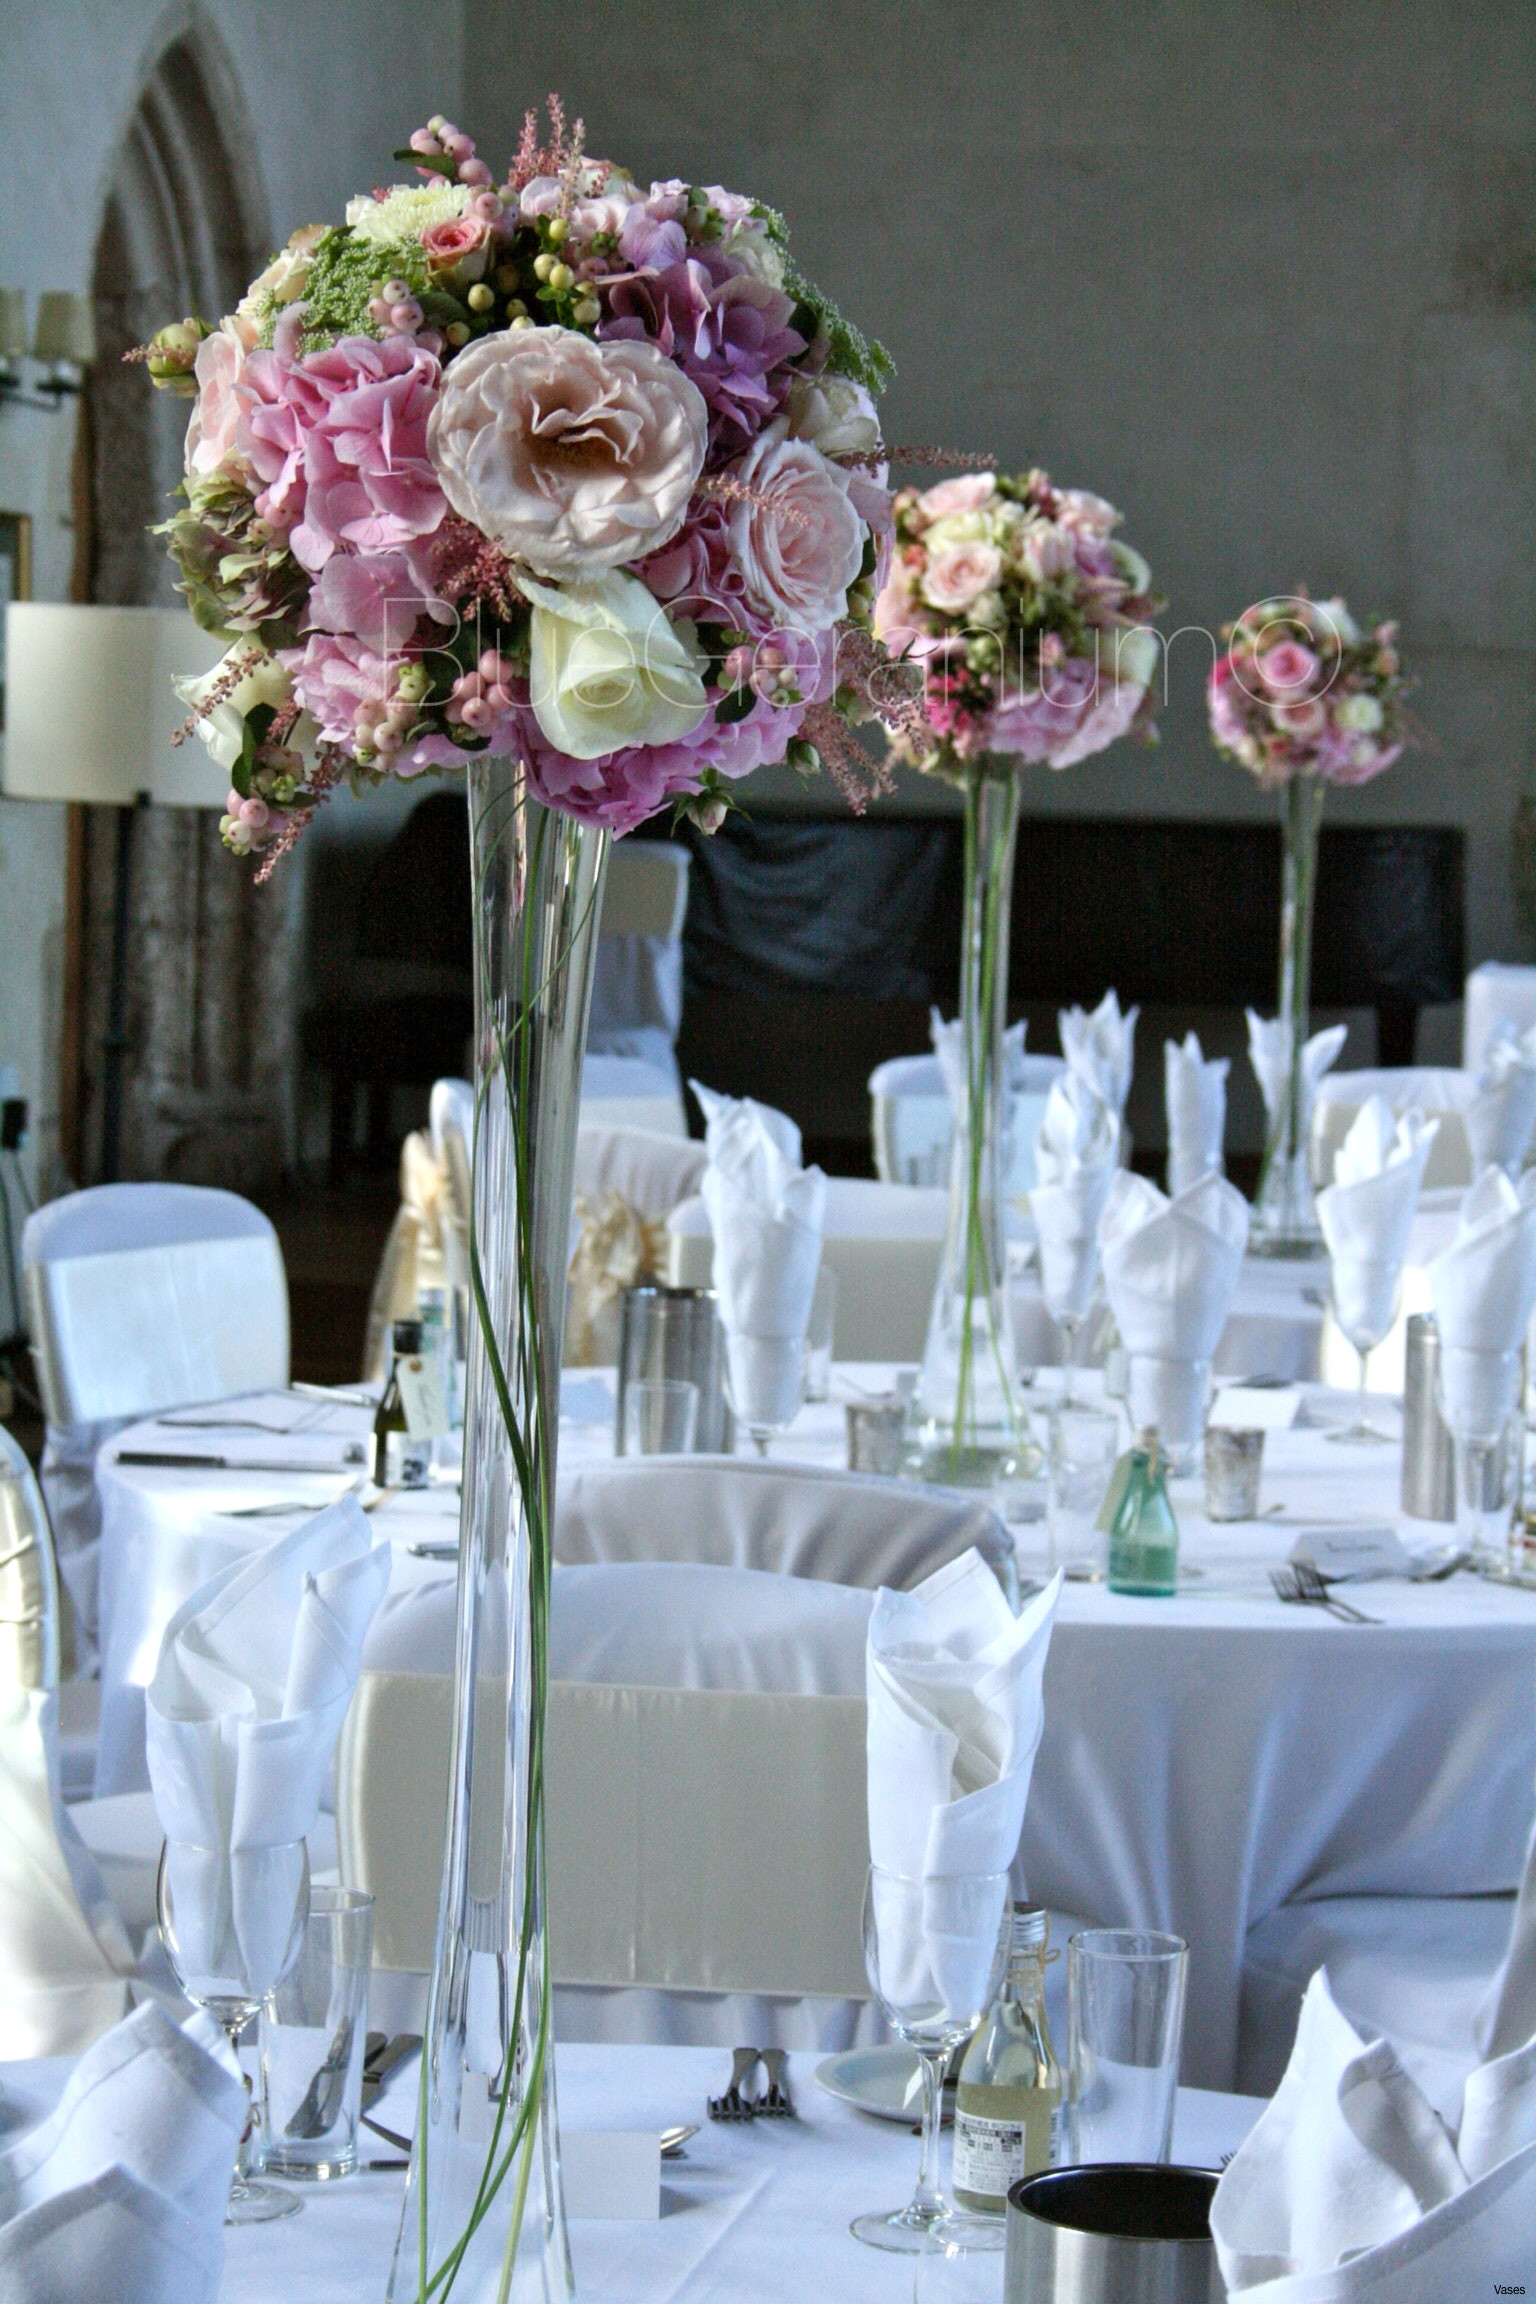 15 Fashionable Tall Wedding Vases for Sale